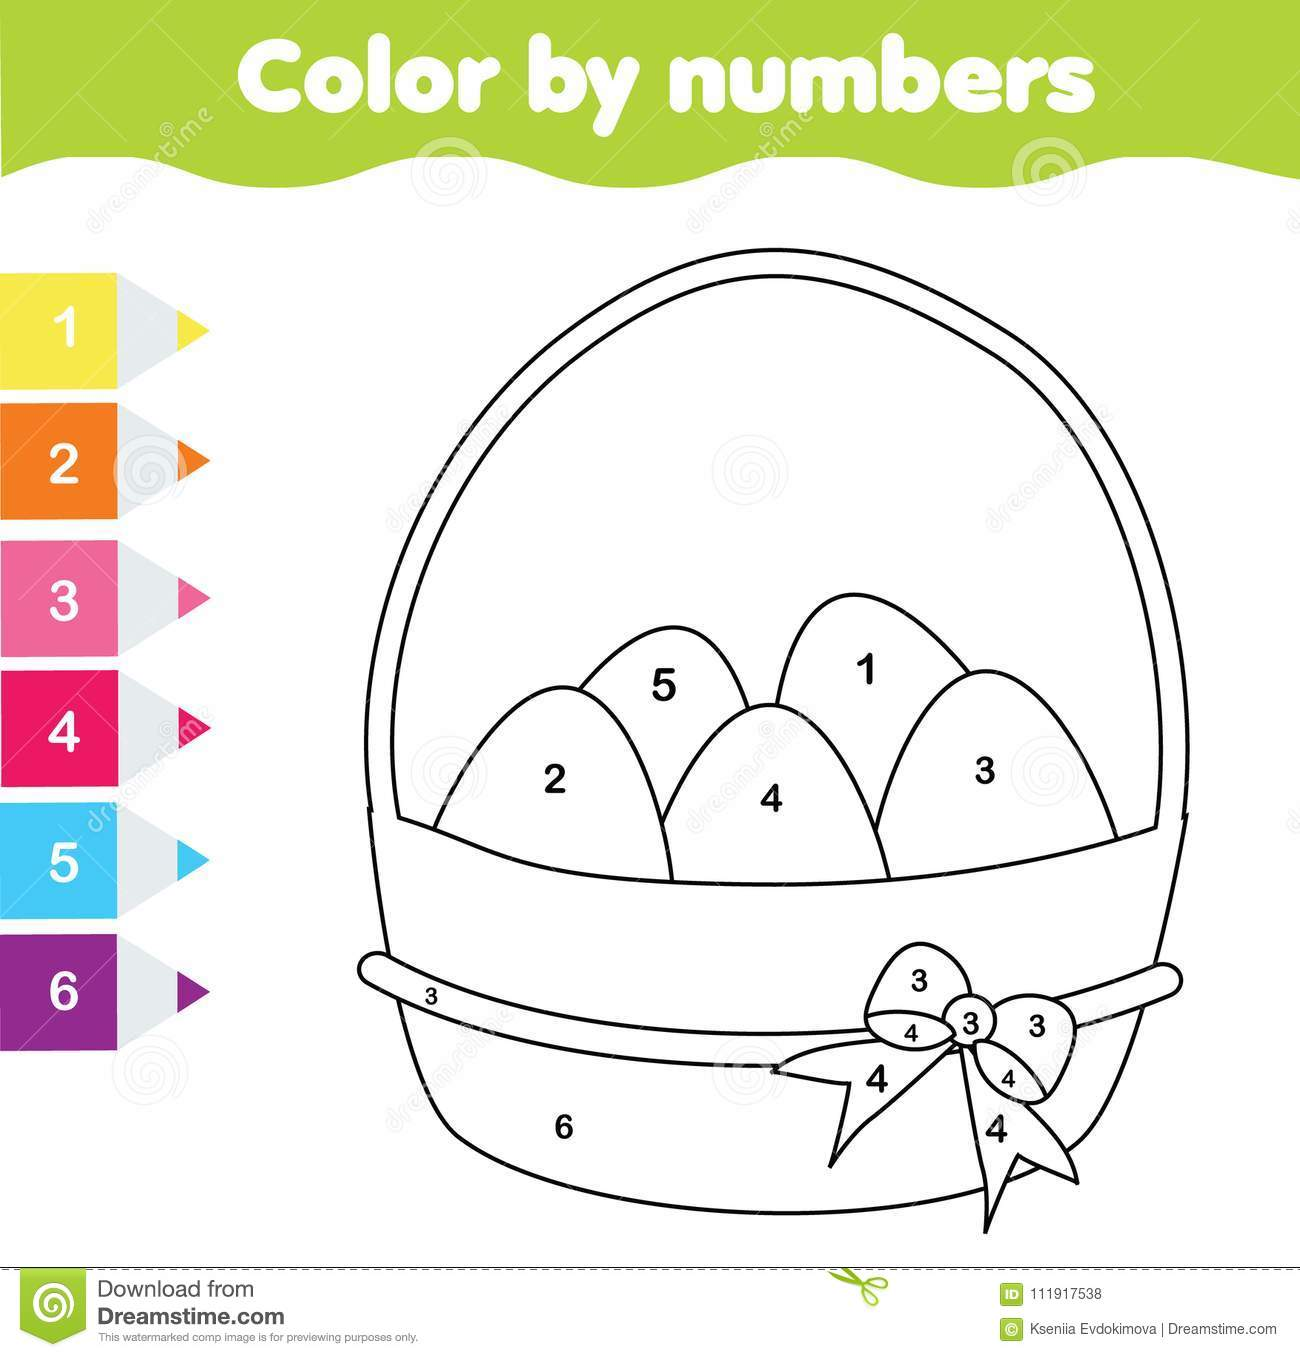 easter drawing game color by numbers printable worksheet coloring page with easter eggs. Black Bedroom Furniture Sets. Home Design Ideas